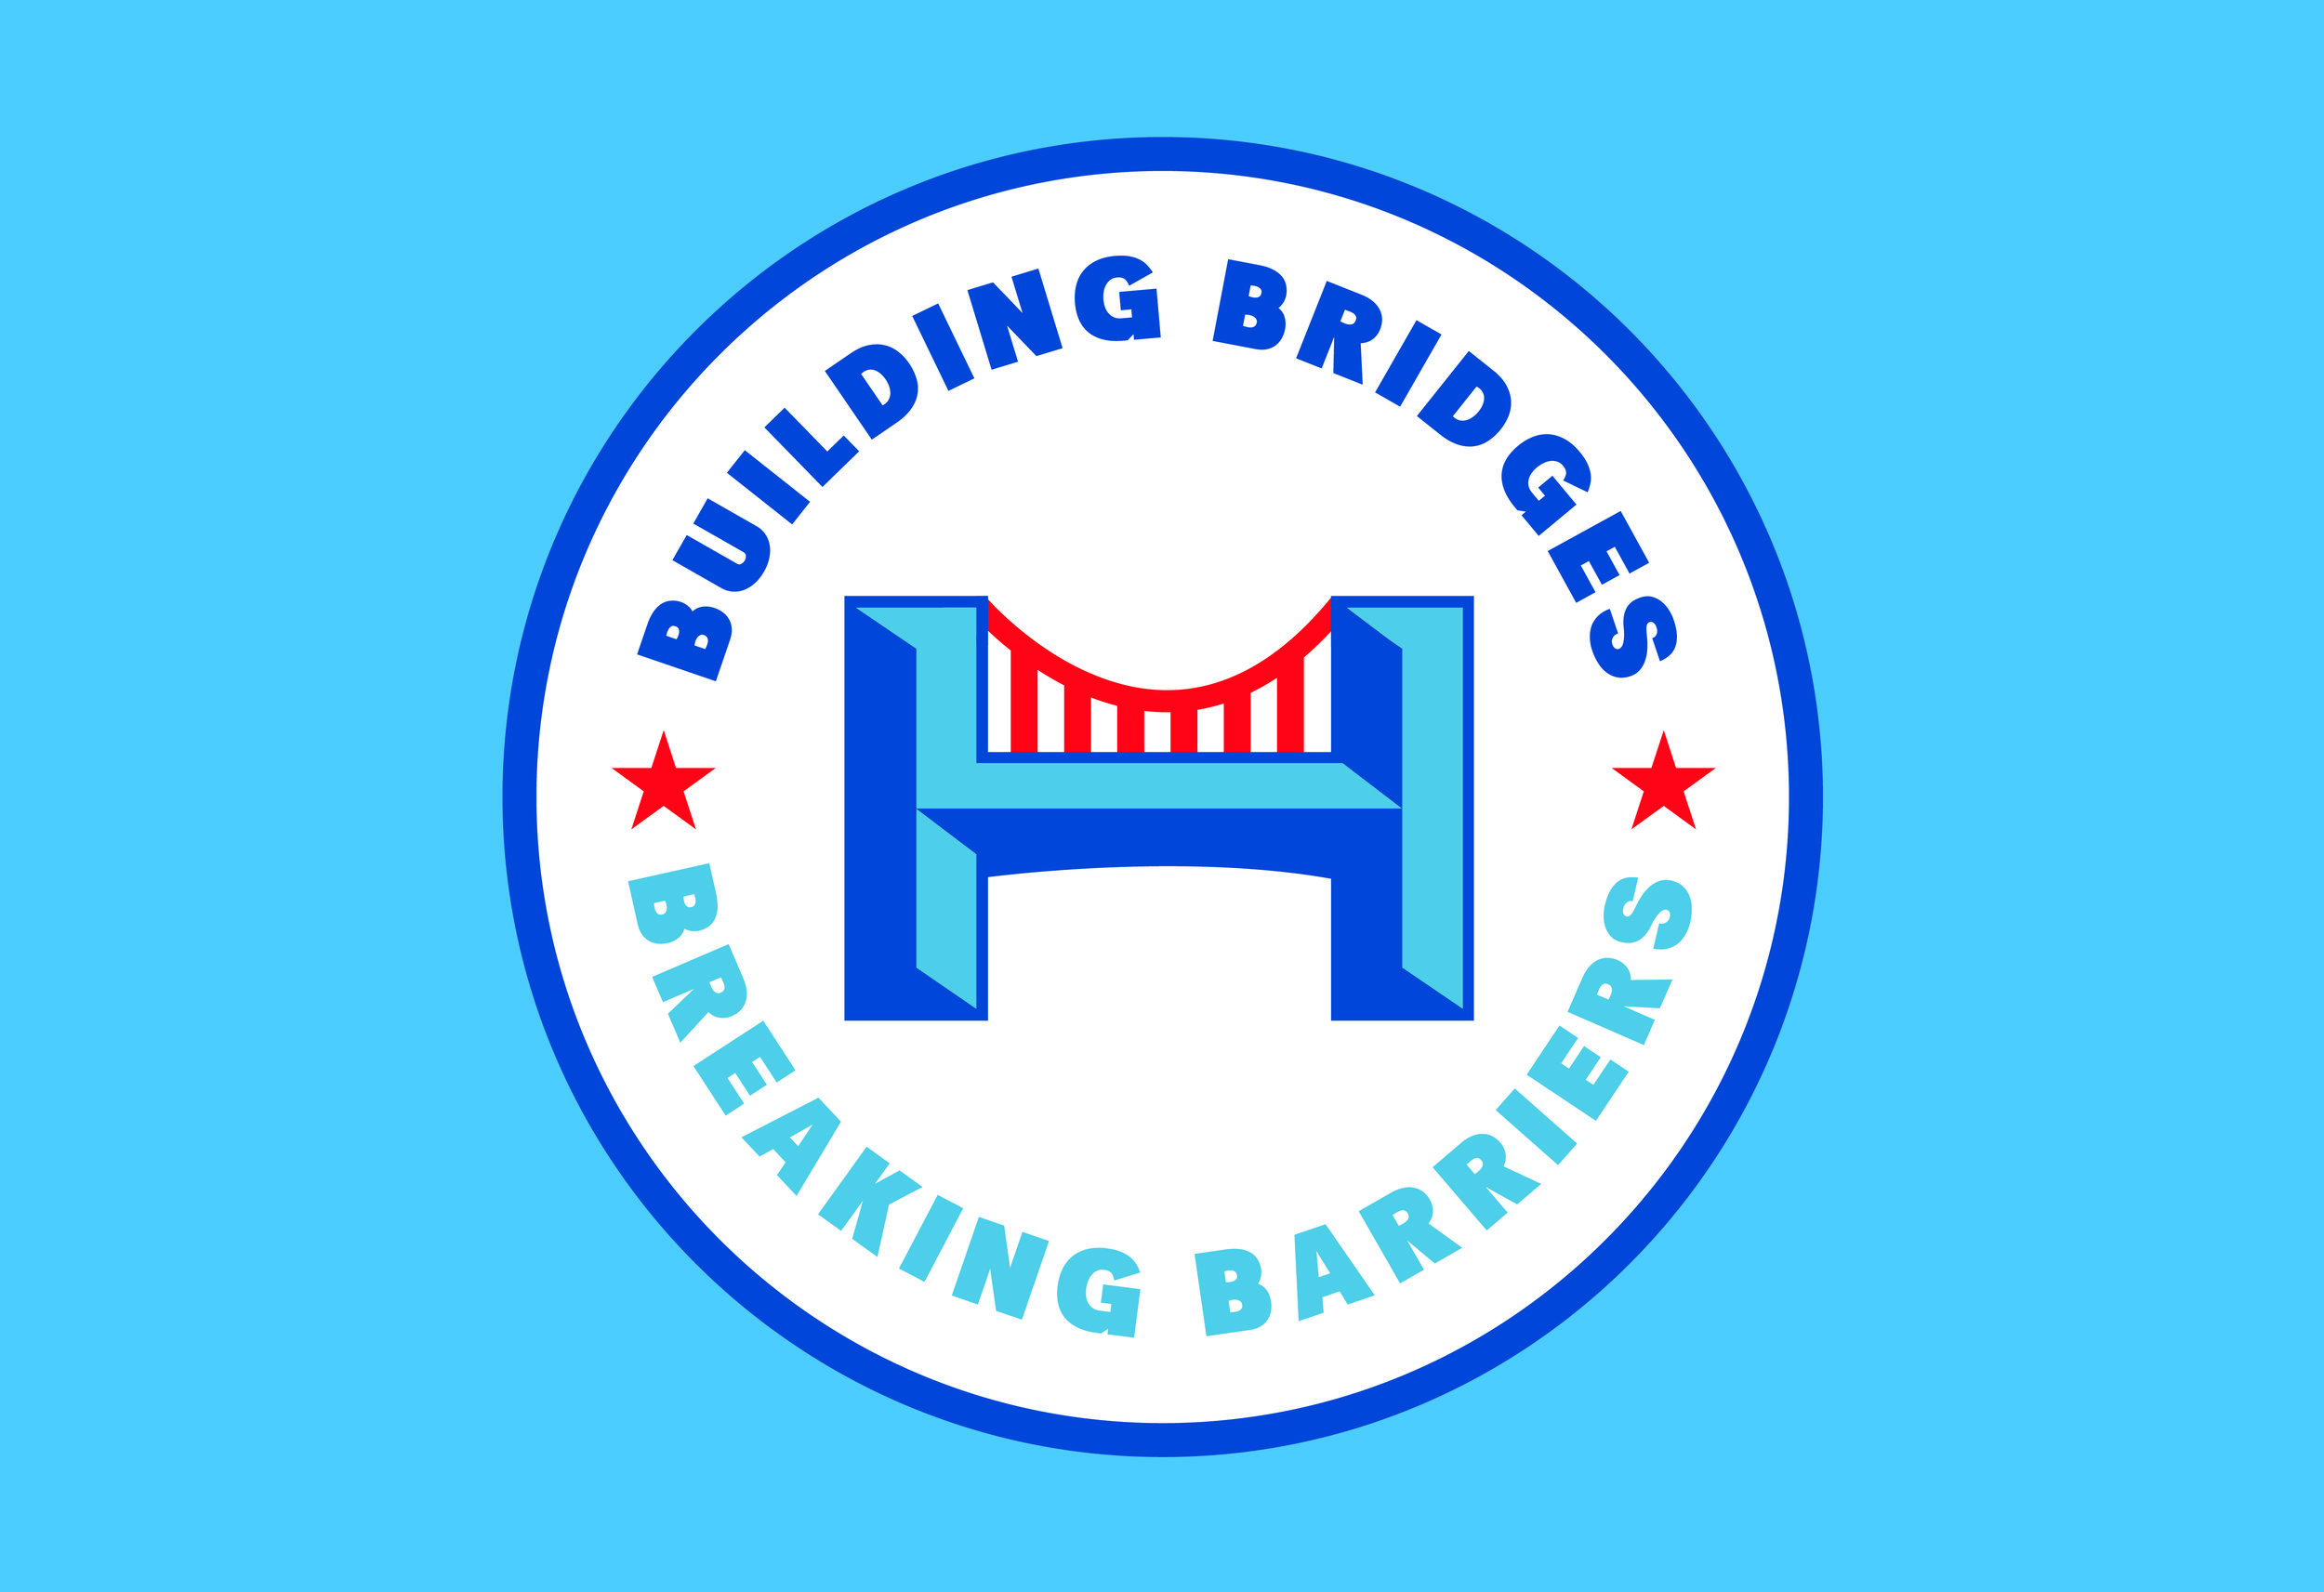 Hillary_Bridges_LOGO_V2